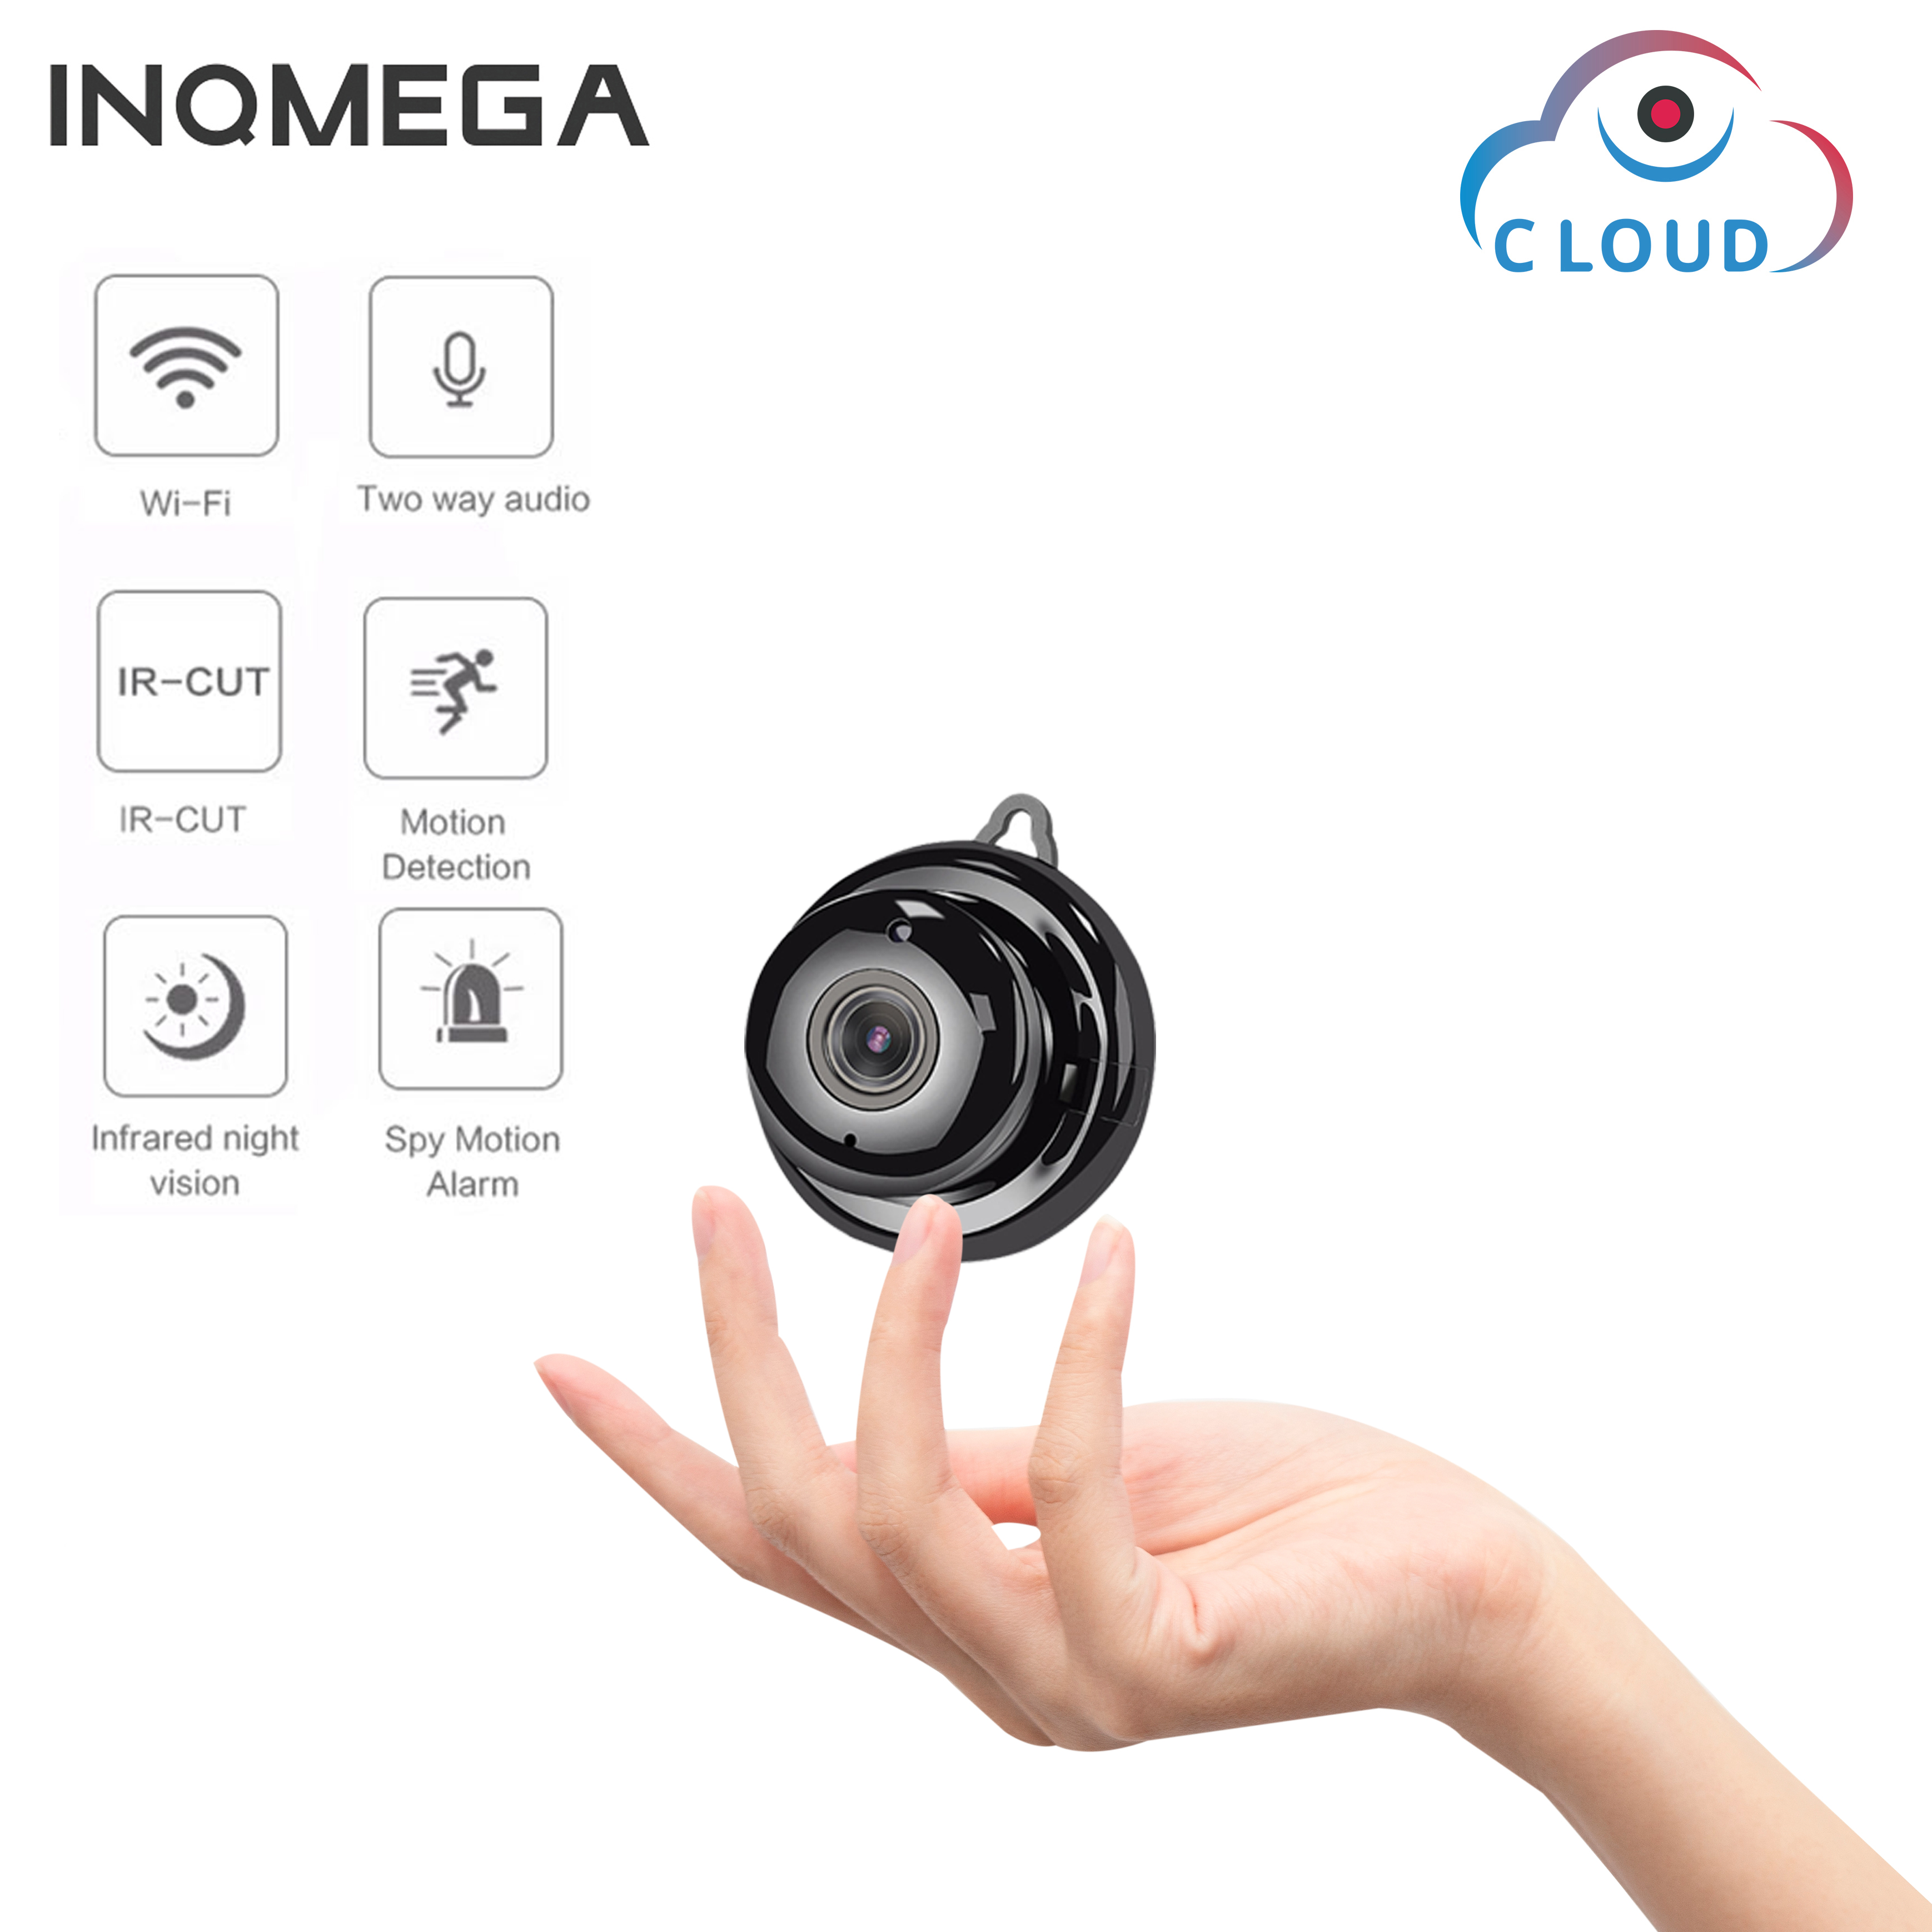 INQMEGA 960P Wireless  Mini WiFi Camera Home Sec Surveillance IR Night Vision Motion Detect Baby Monitorurity Camera IP CCTV